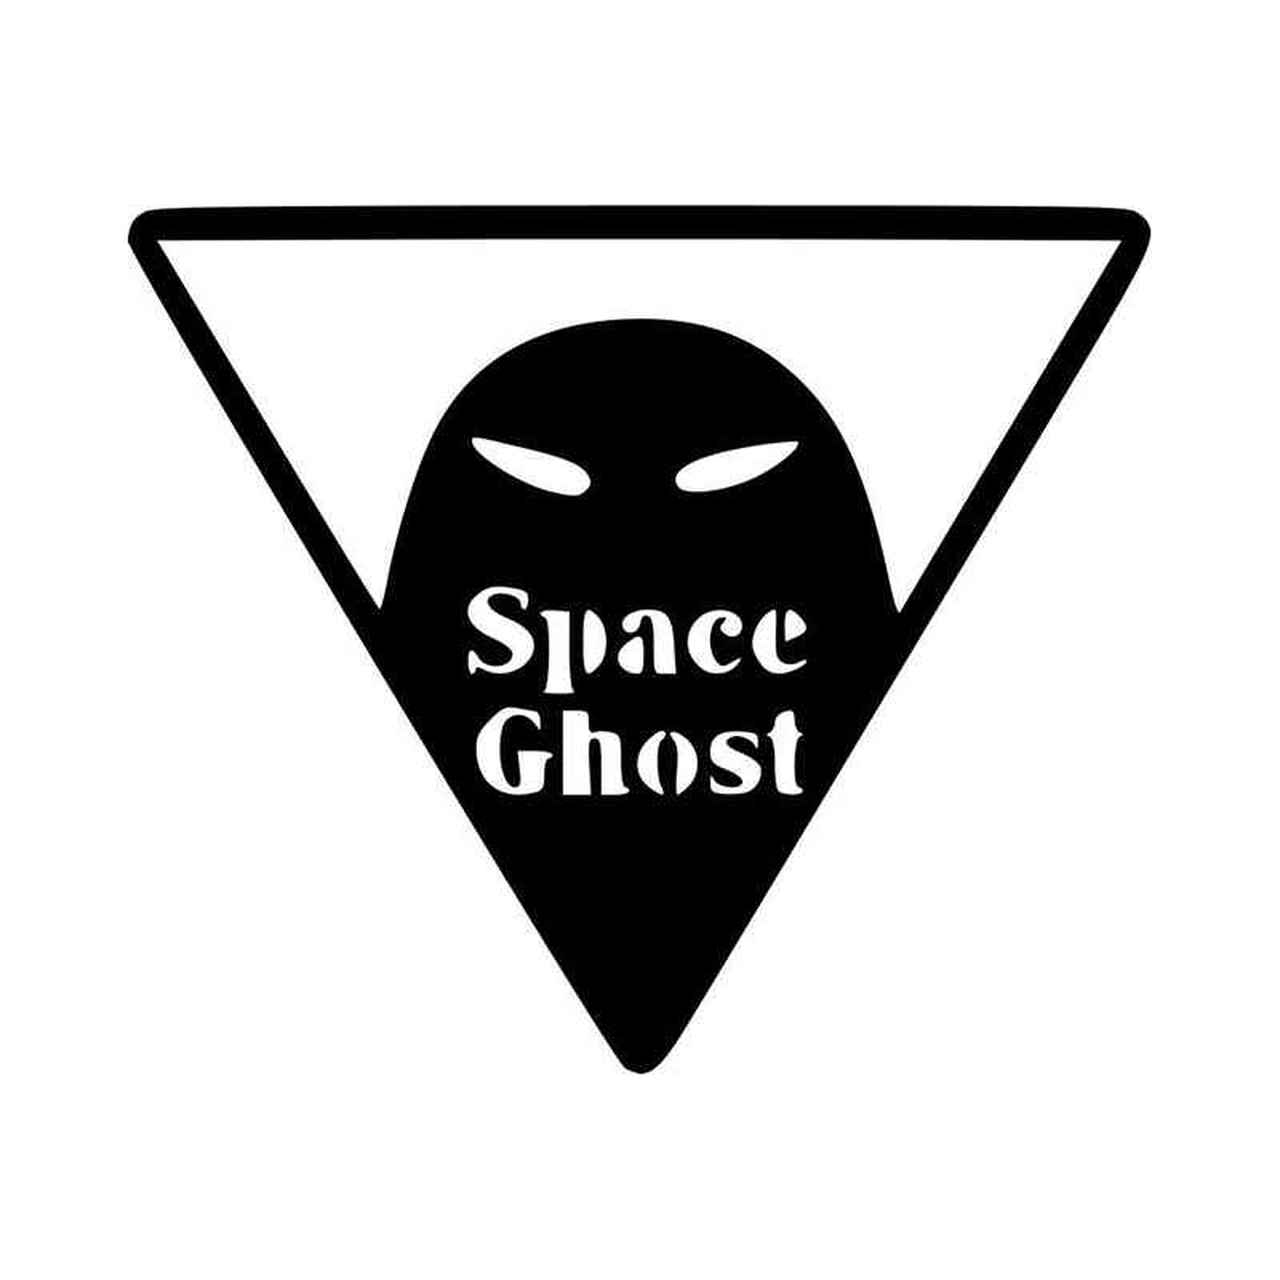 Space Ghost Vinyl Decal Sticker.